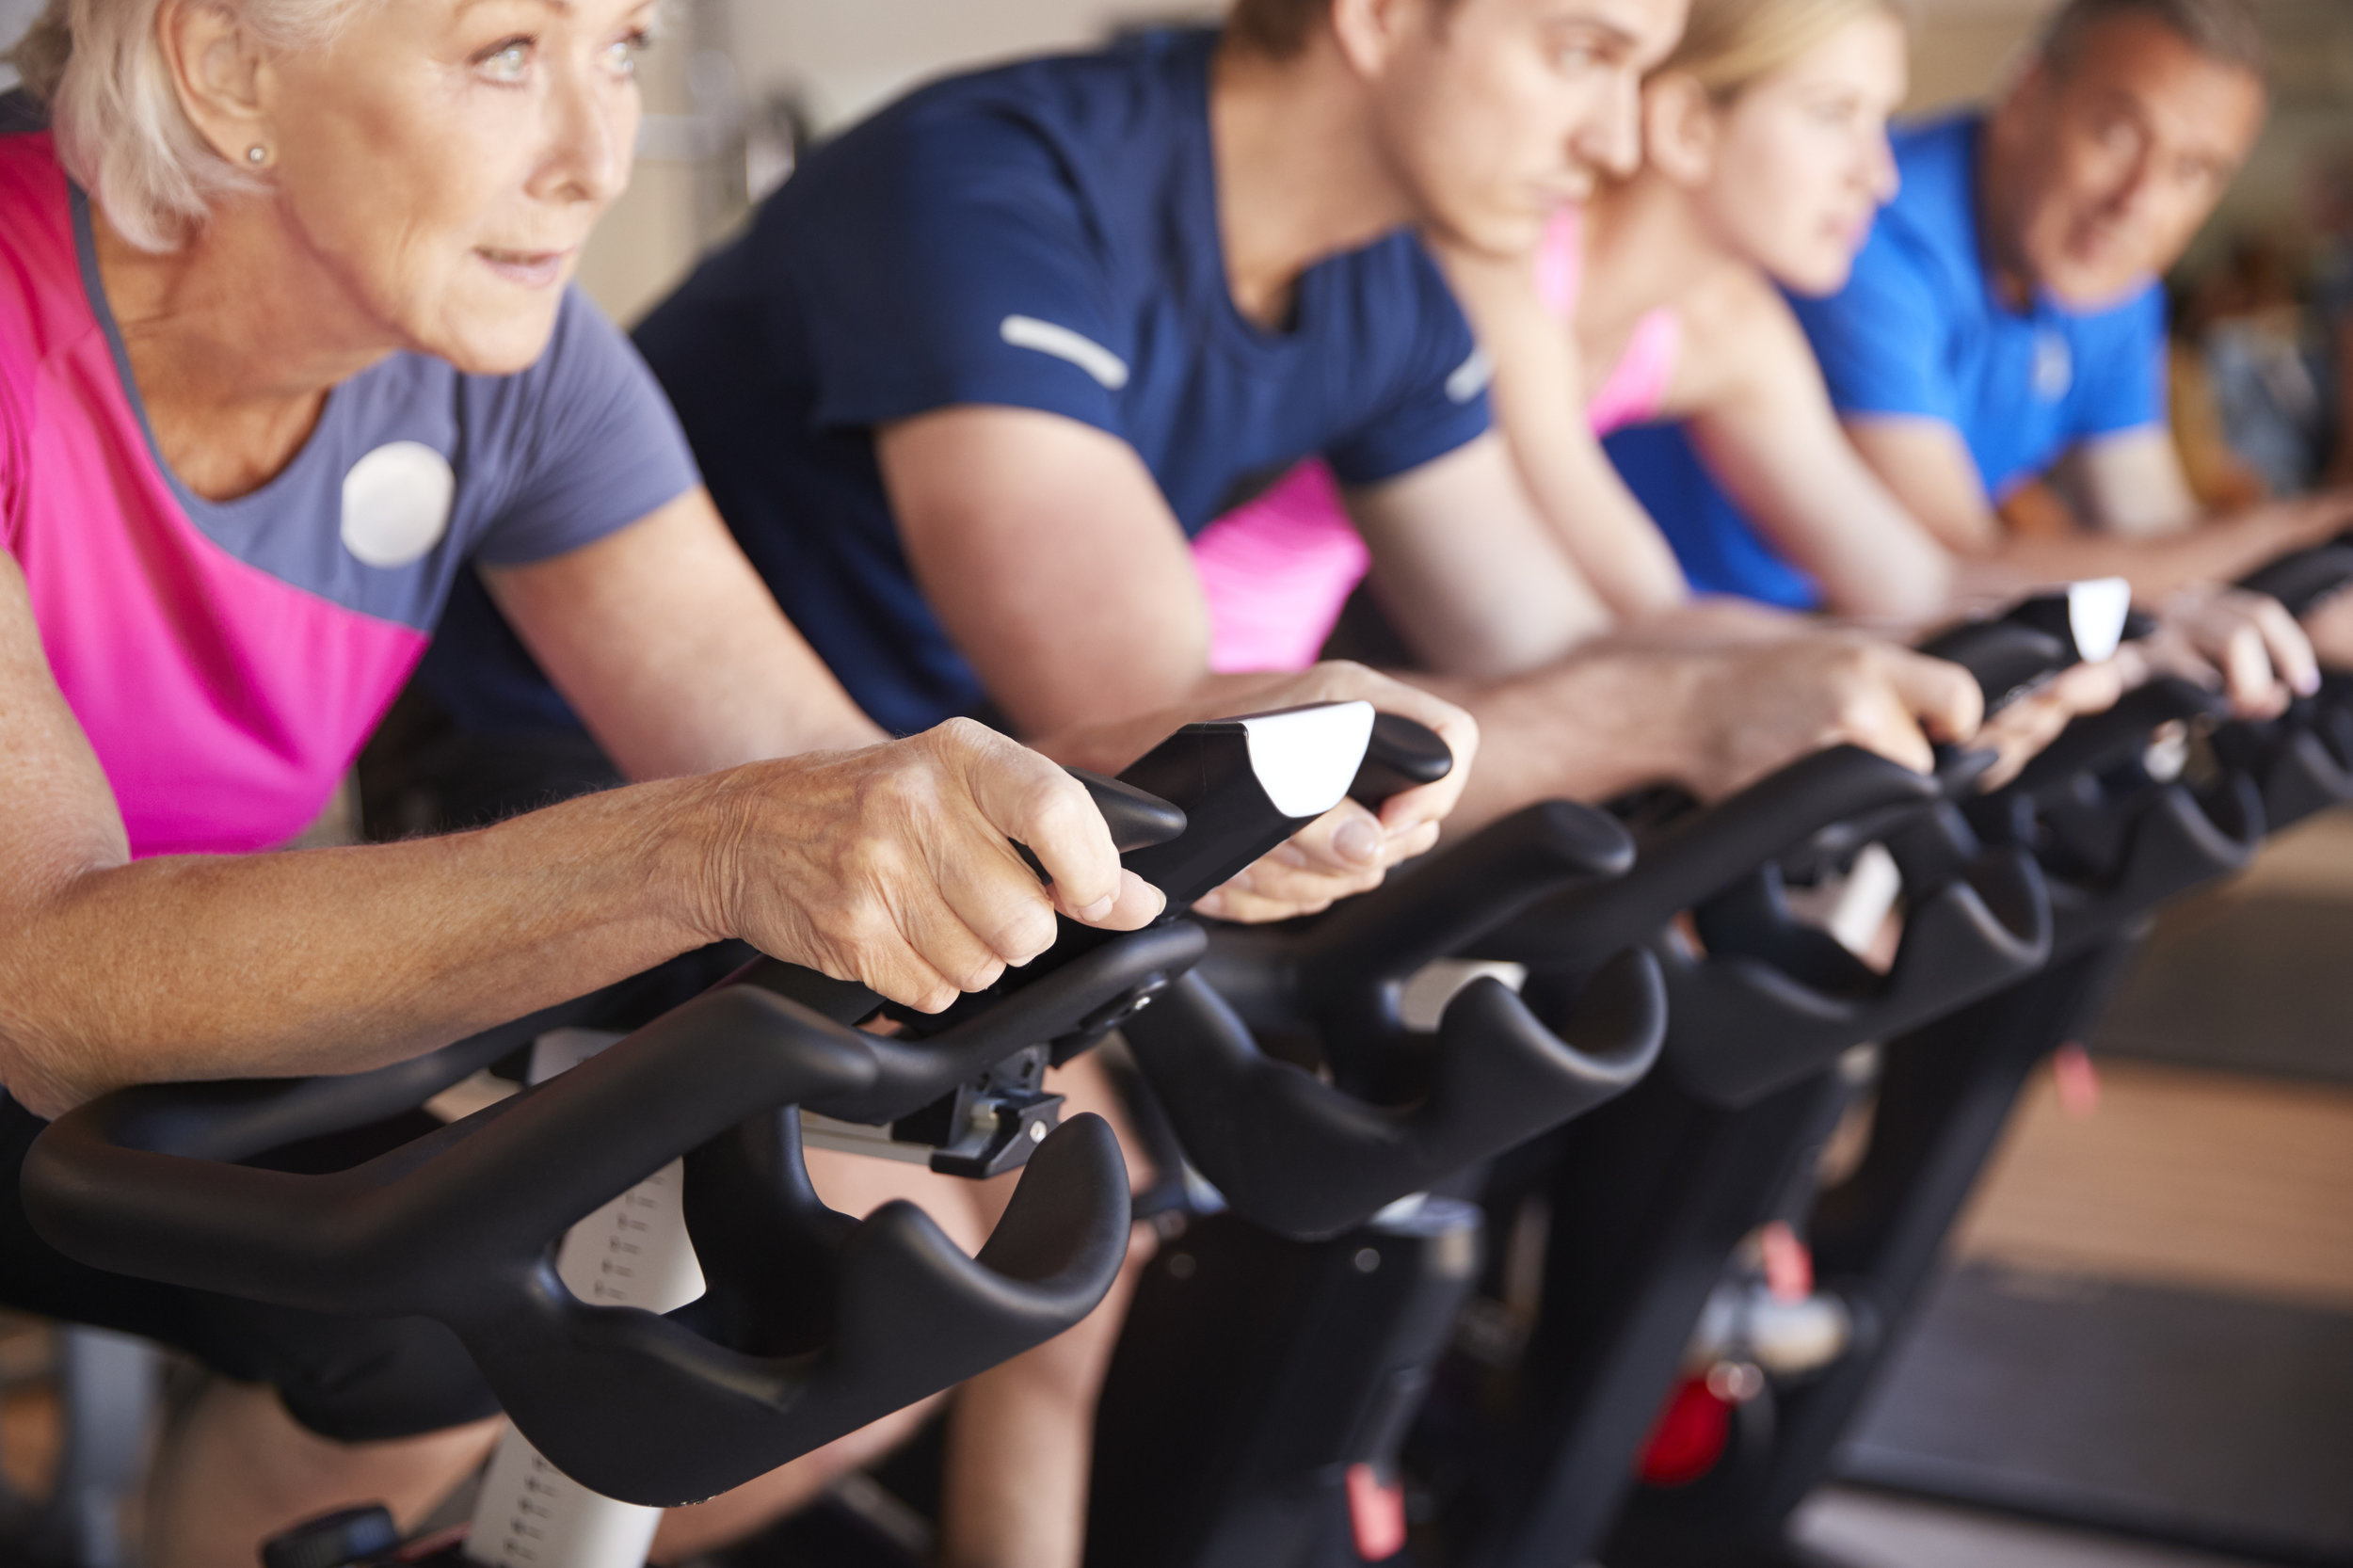 Even a vigorous cycling class, which can burn more than 700 calories, can be completely canceled out with just a few mixed drinks or a piece of cake. -